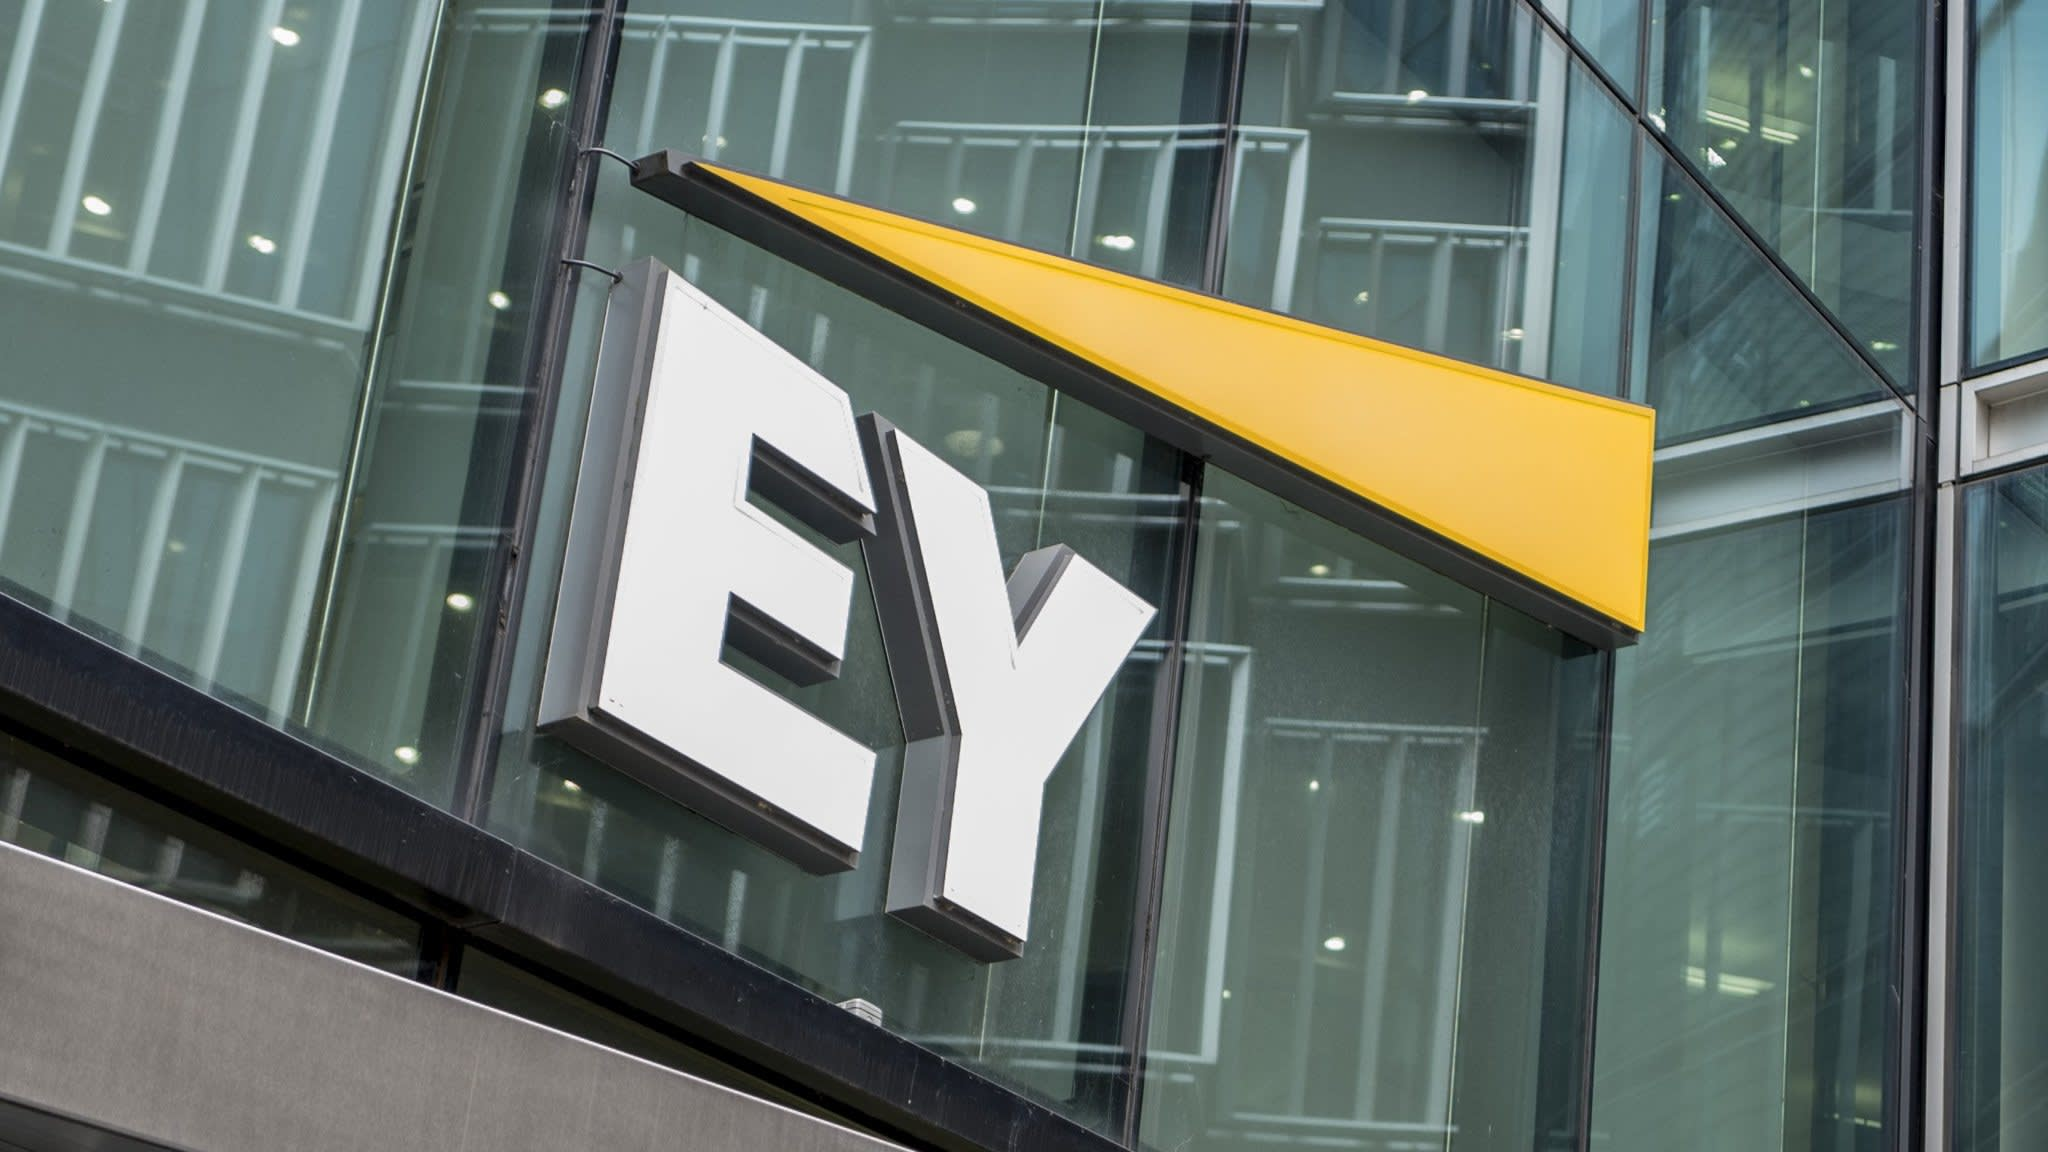 Ernst & Young hit with new sexual harassment claim